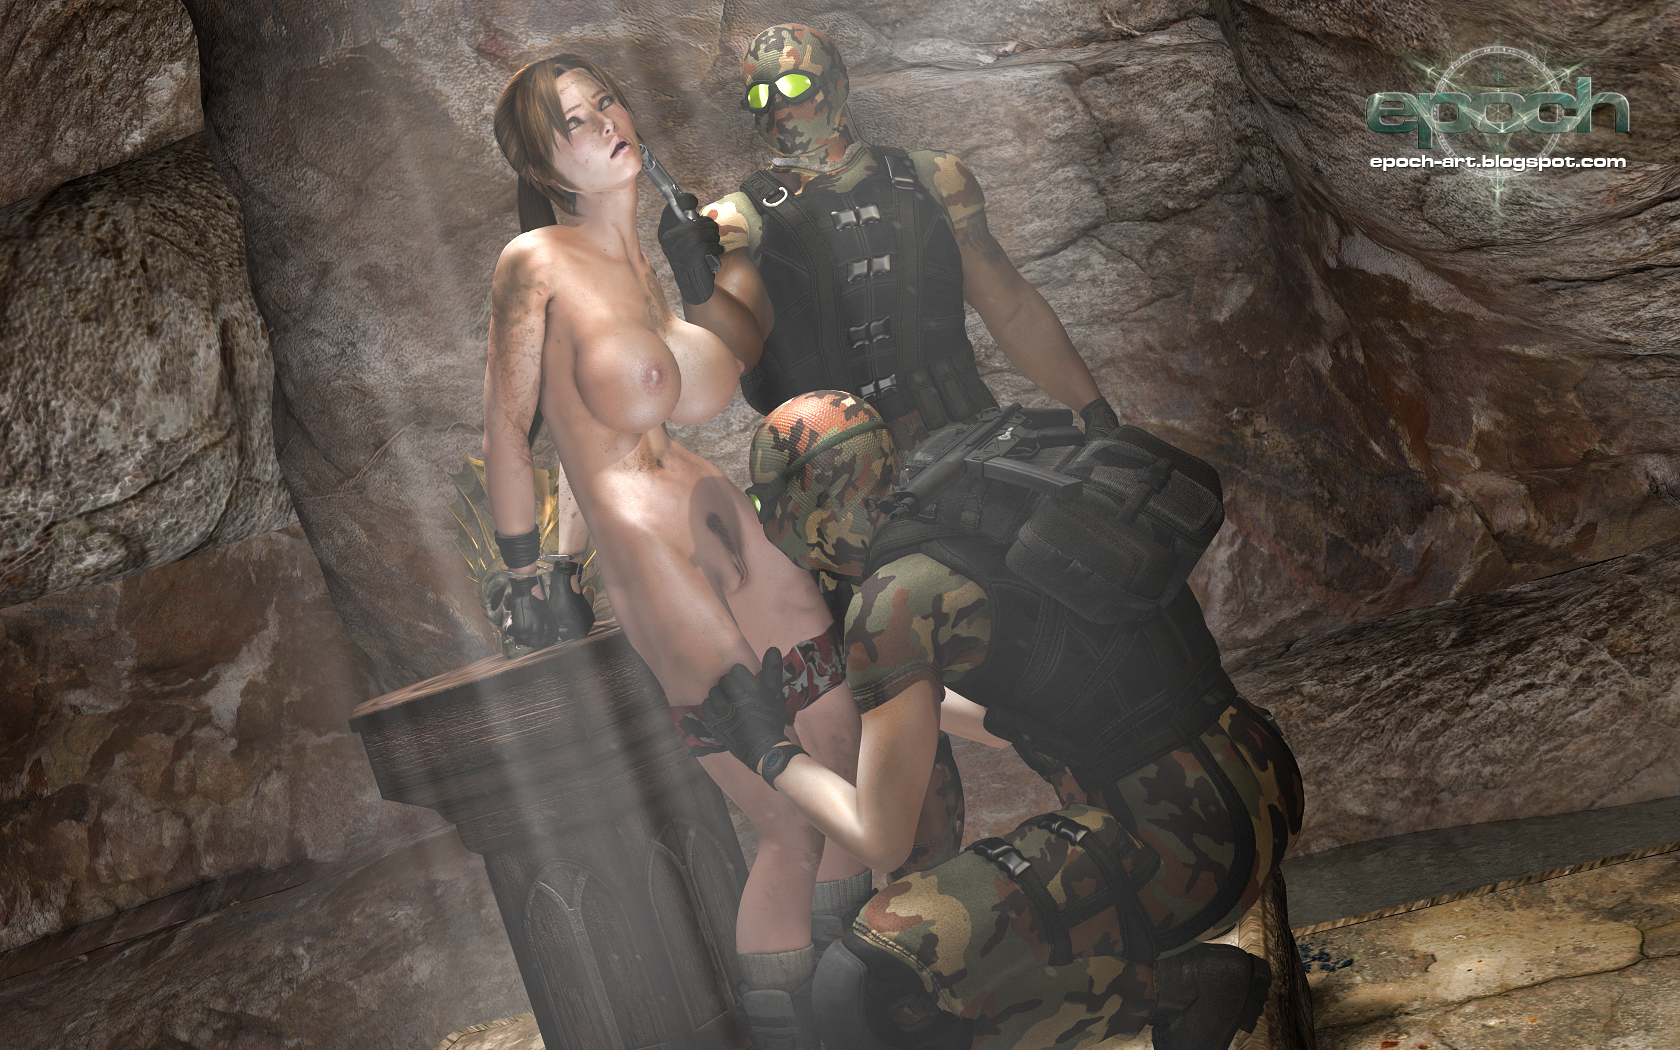 Lara croft 3d world xxx hentay photo